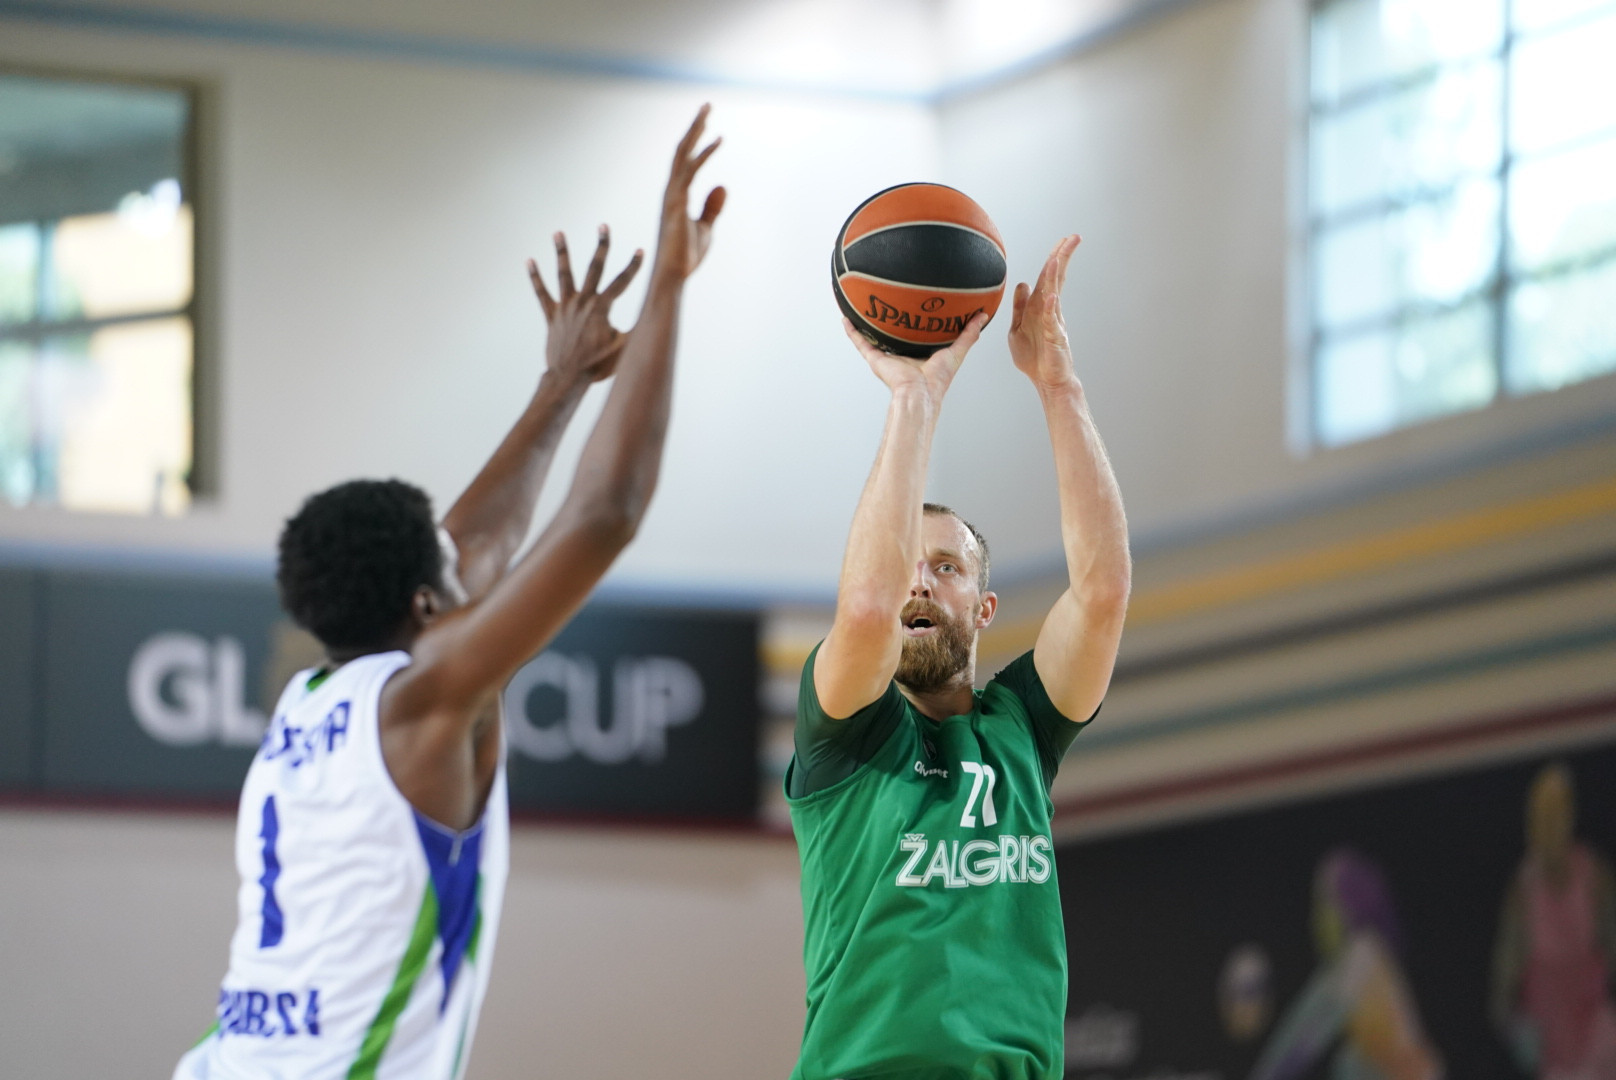 Zalgiris Kaunas captain Arturas Mlaknis scored 24 points as the defending champions finished fifth ©GSA